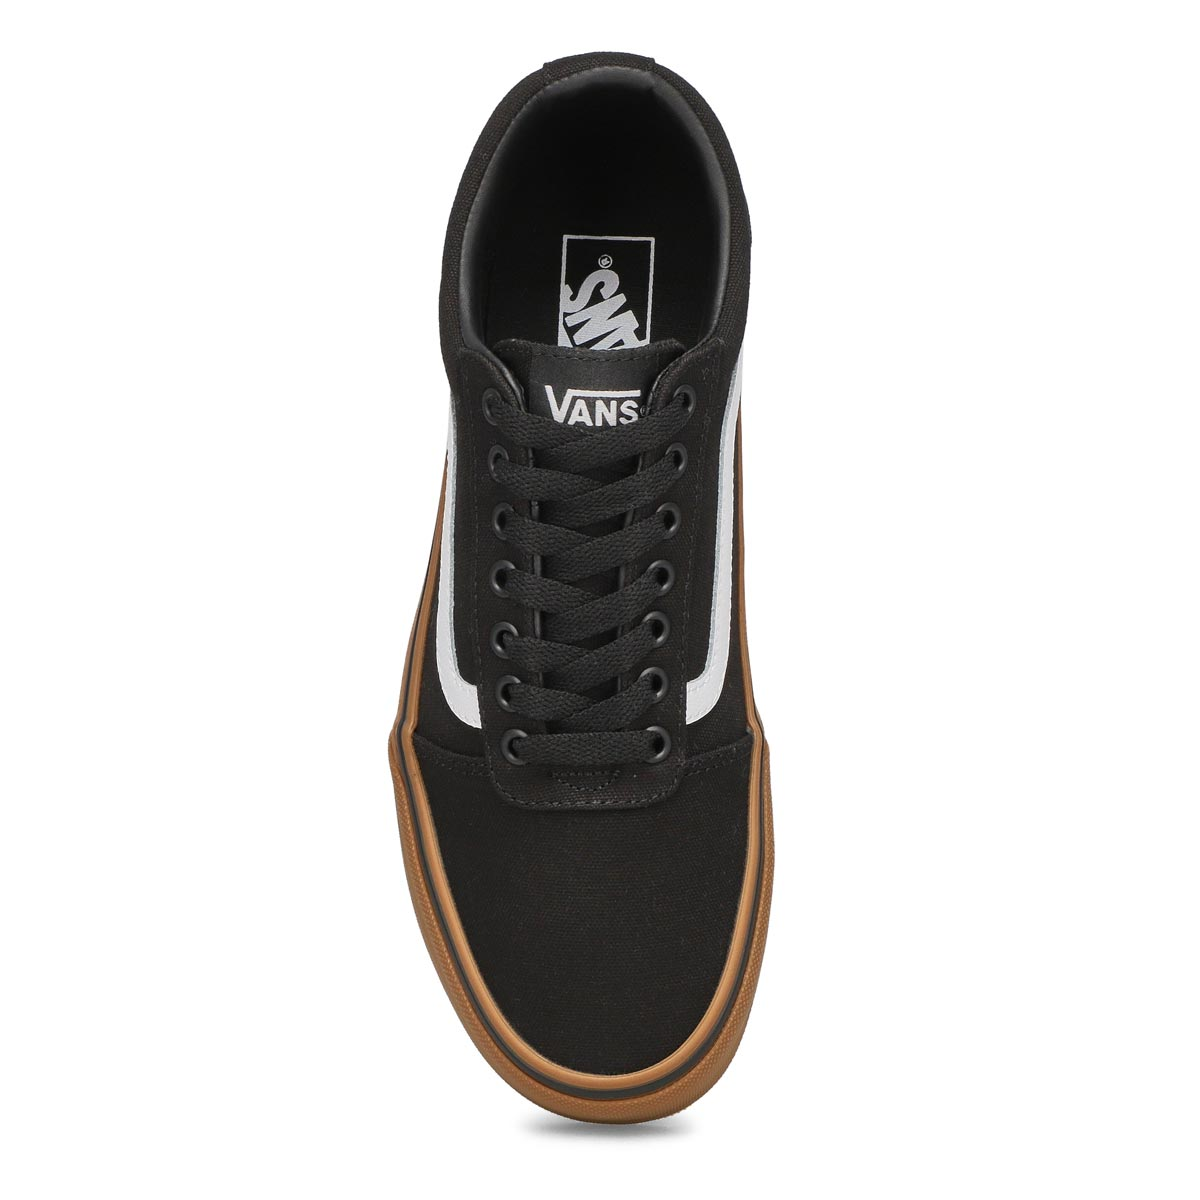 Mns Ward blk/gum lace up sneaker